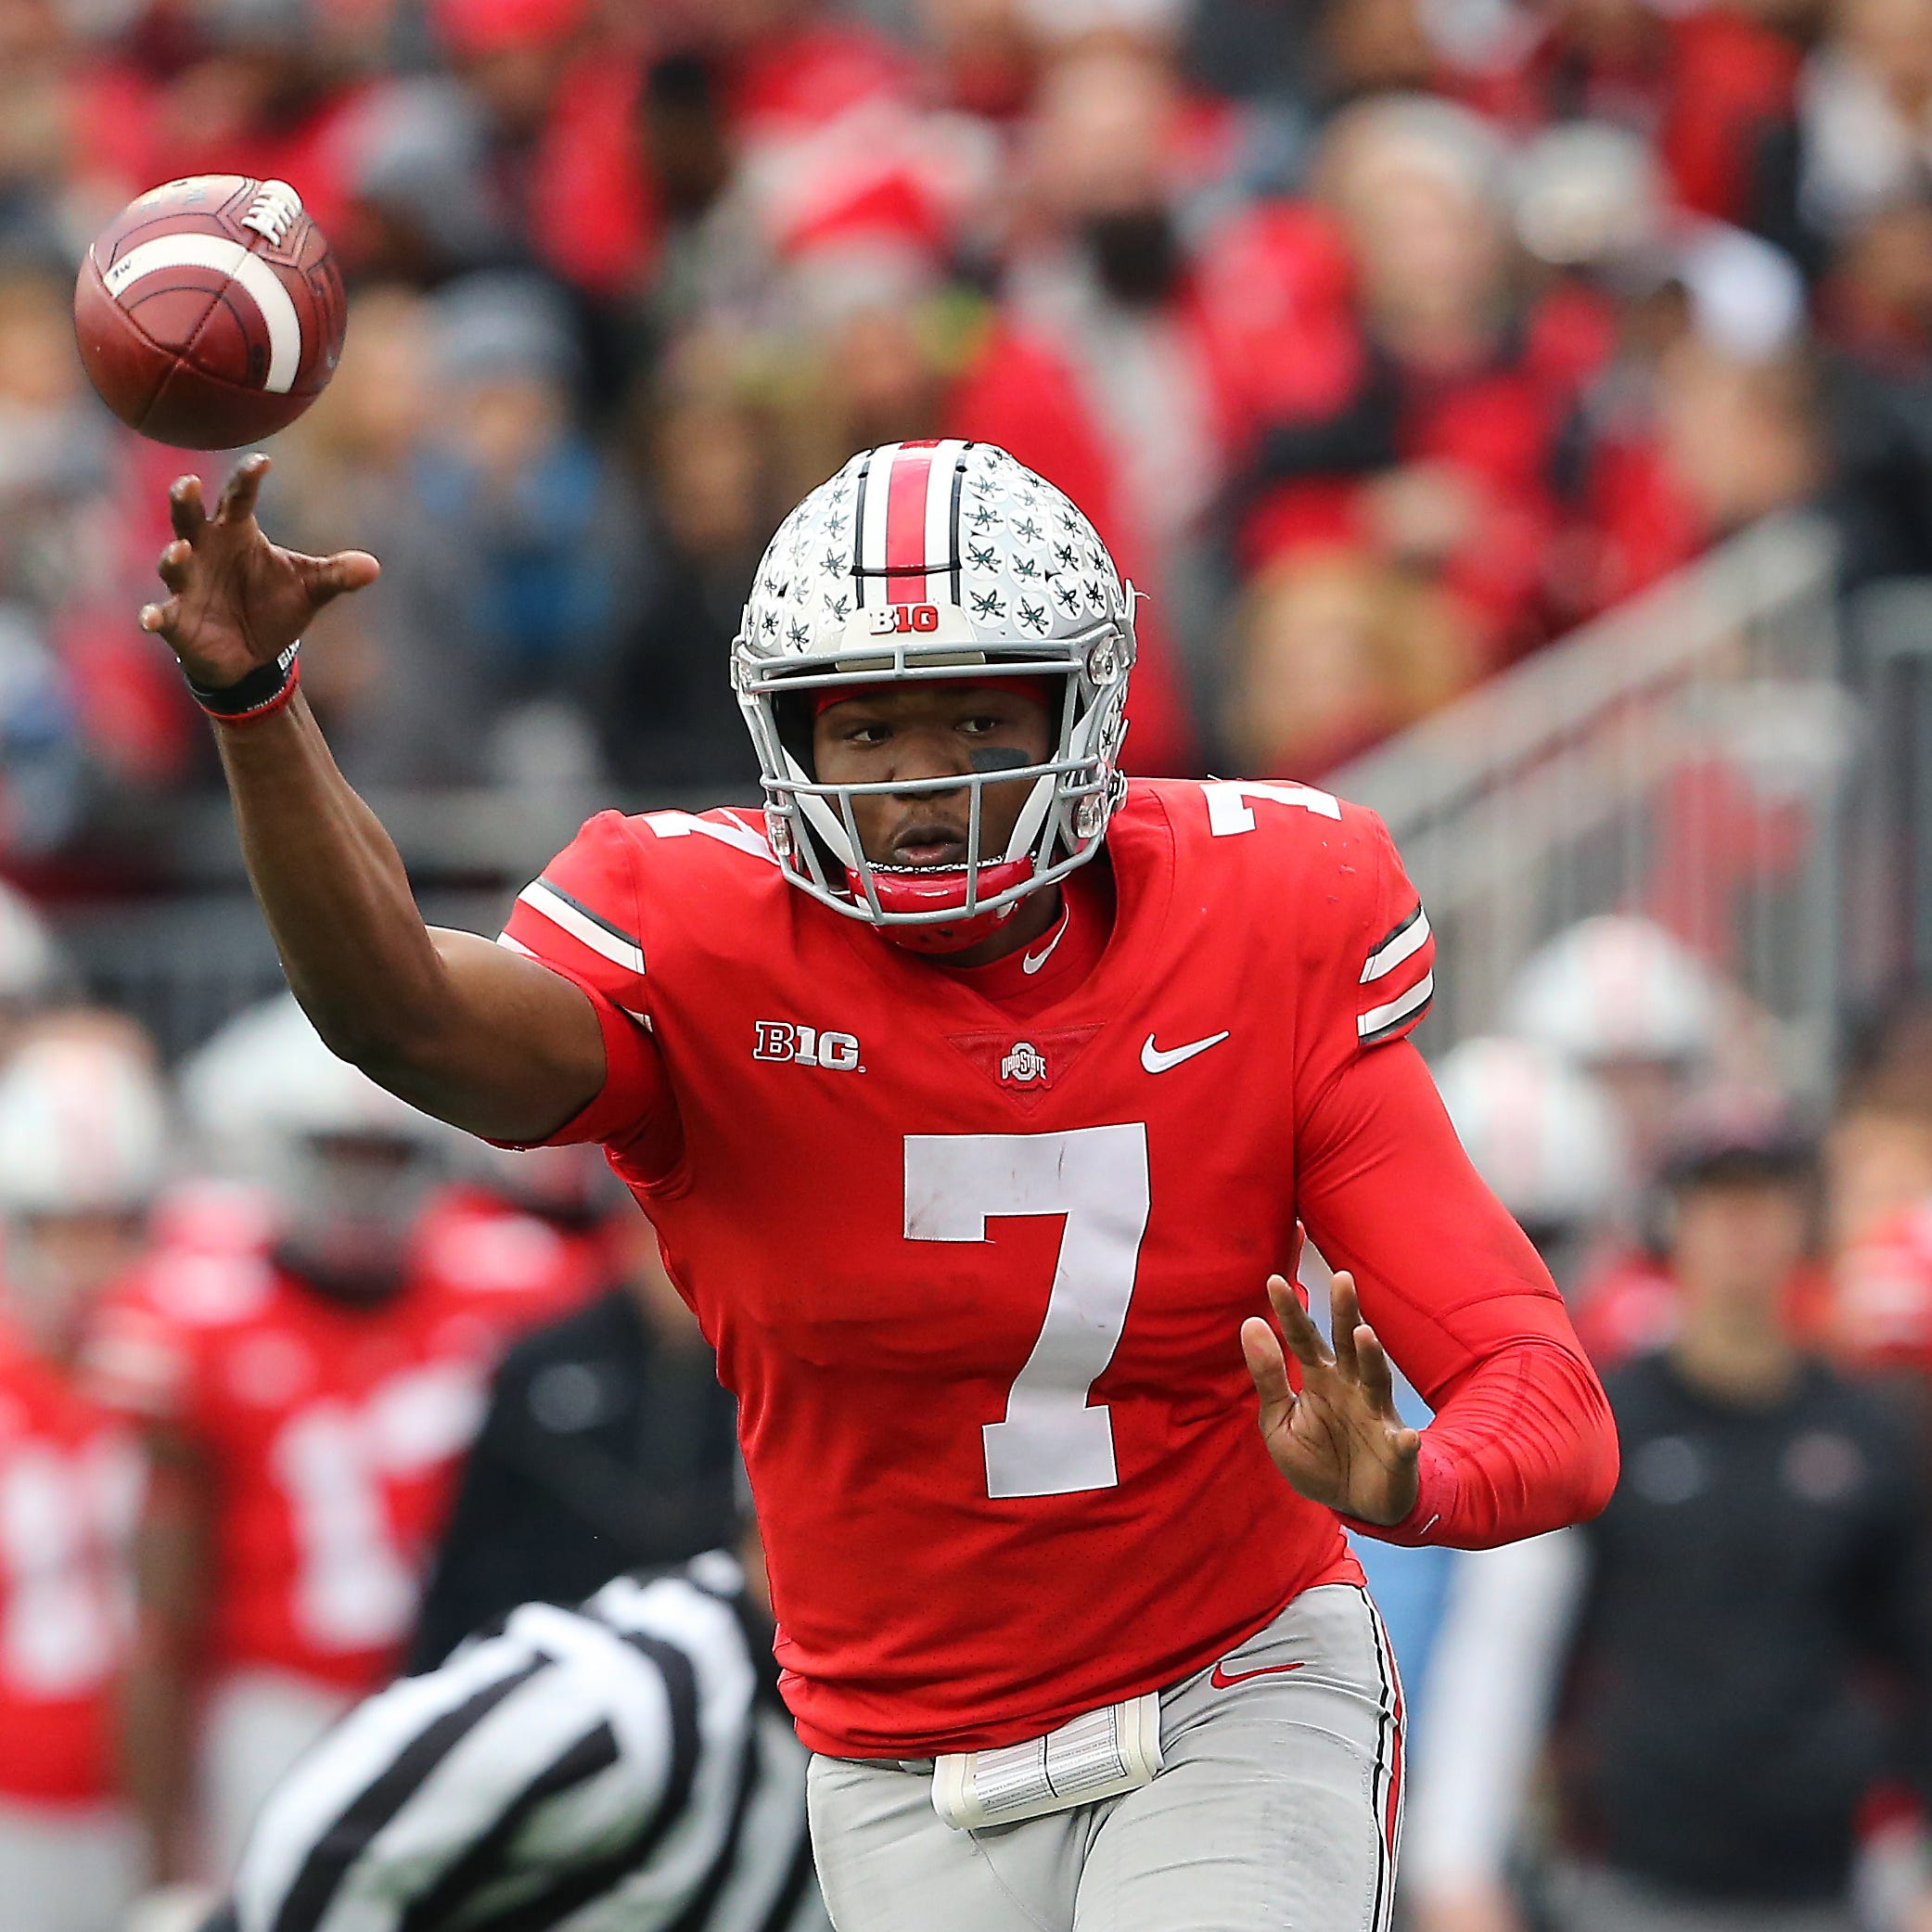 Doc's Morning Line: Hey, Bengals fans, Dwayne Haskins is a sugar rush, not a solution.